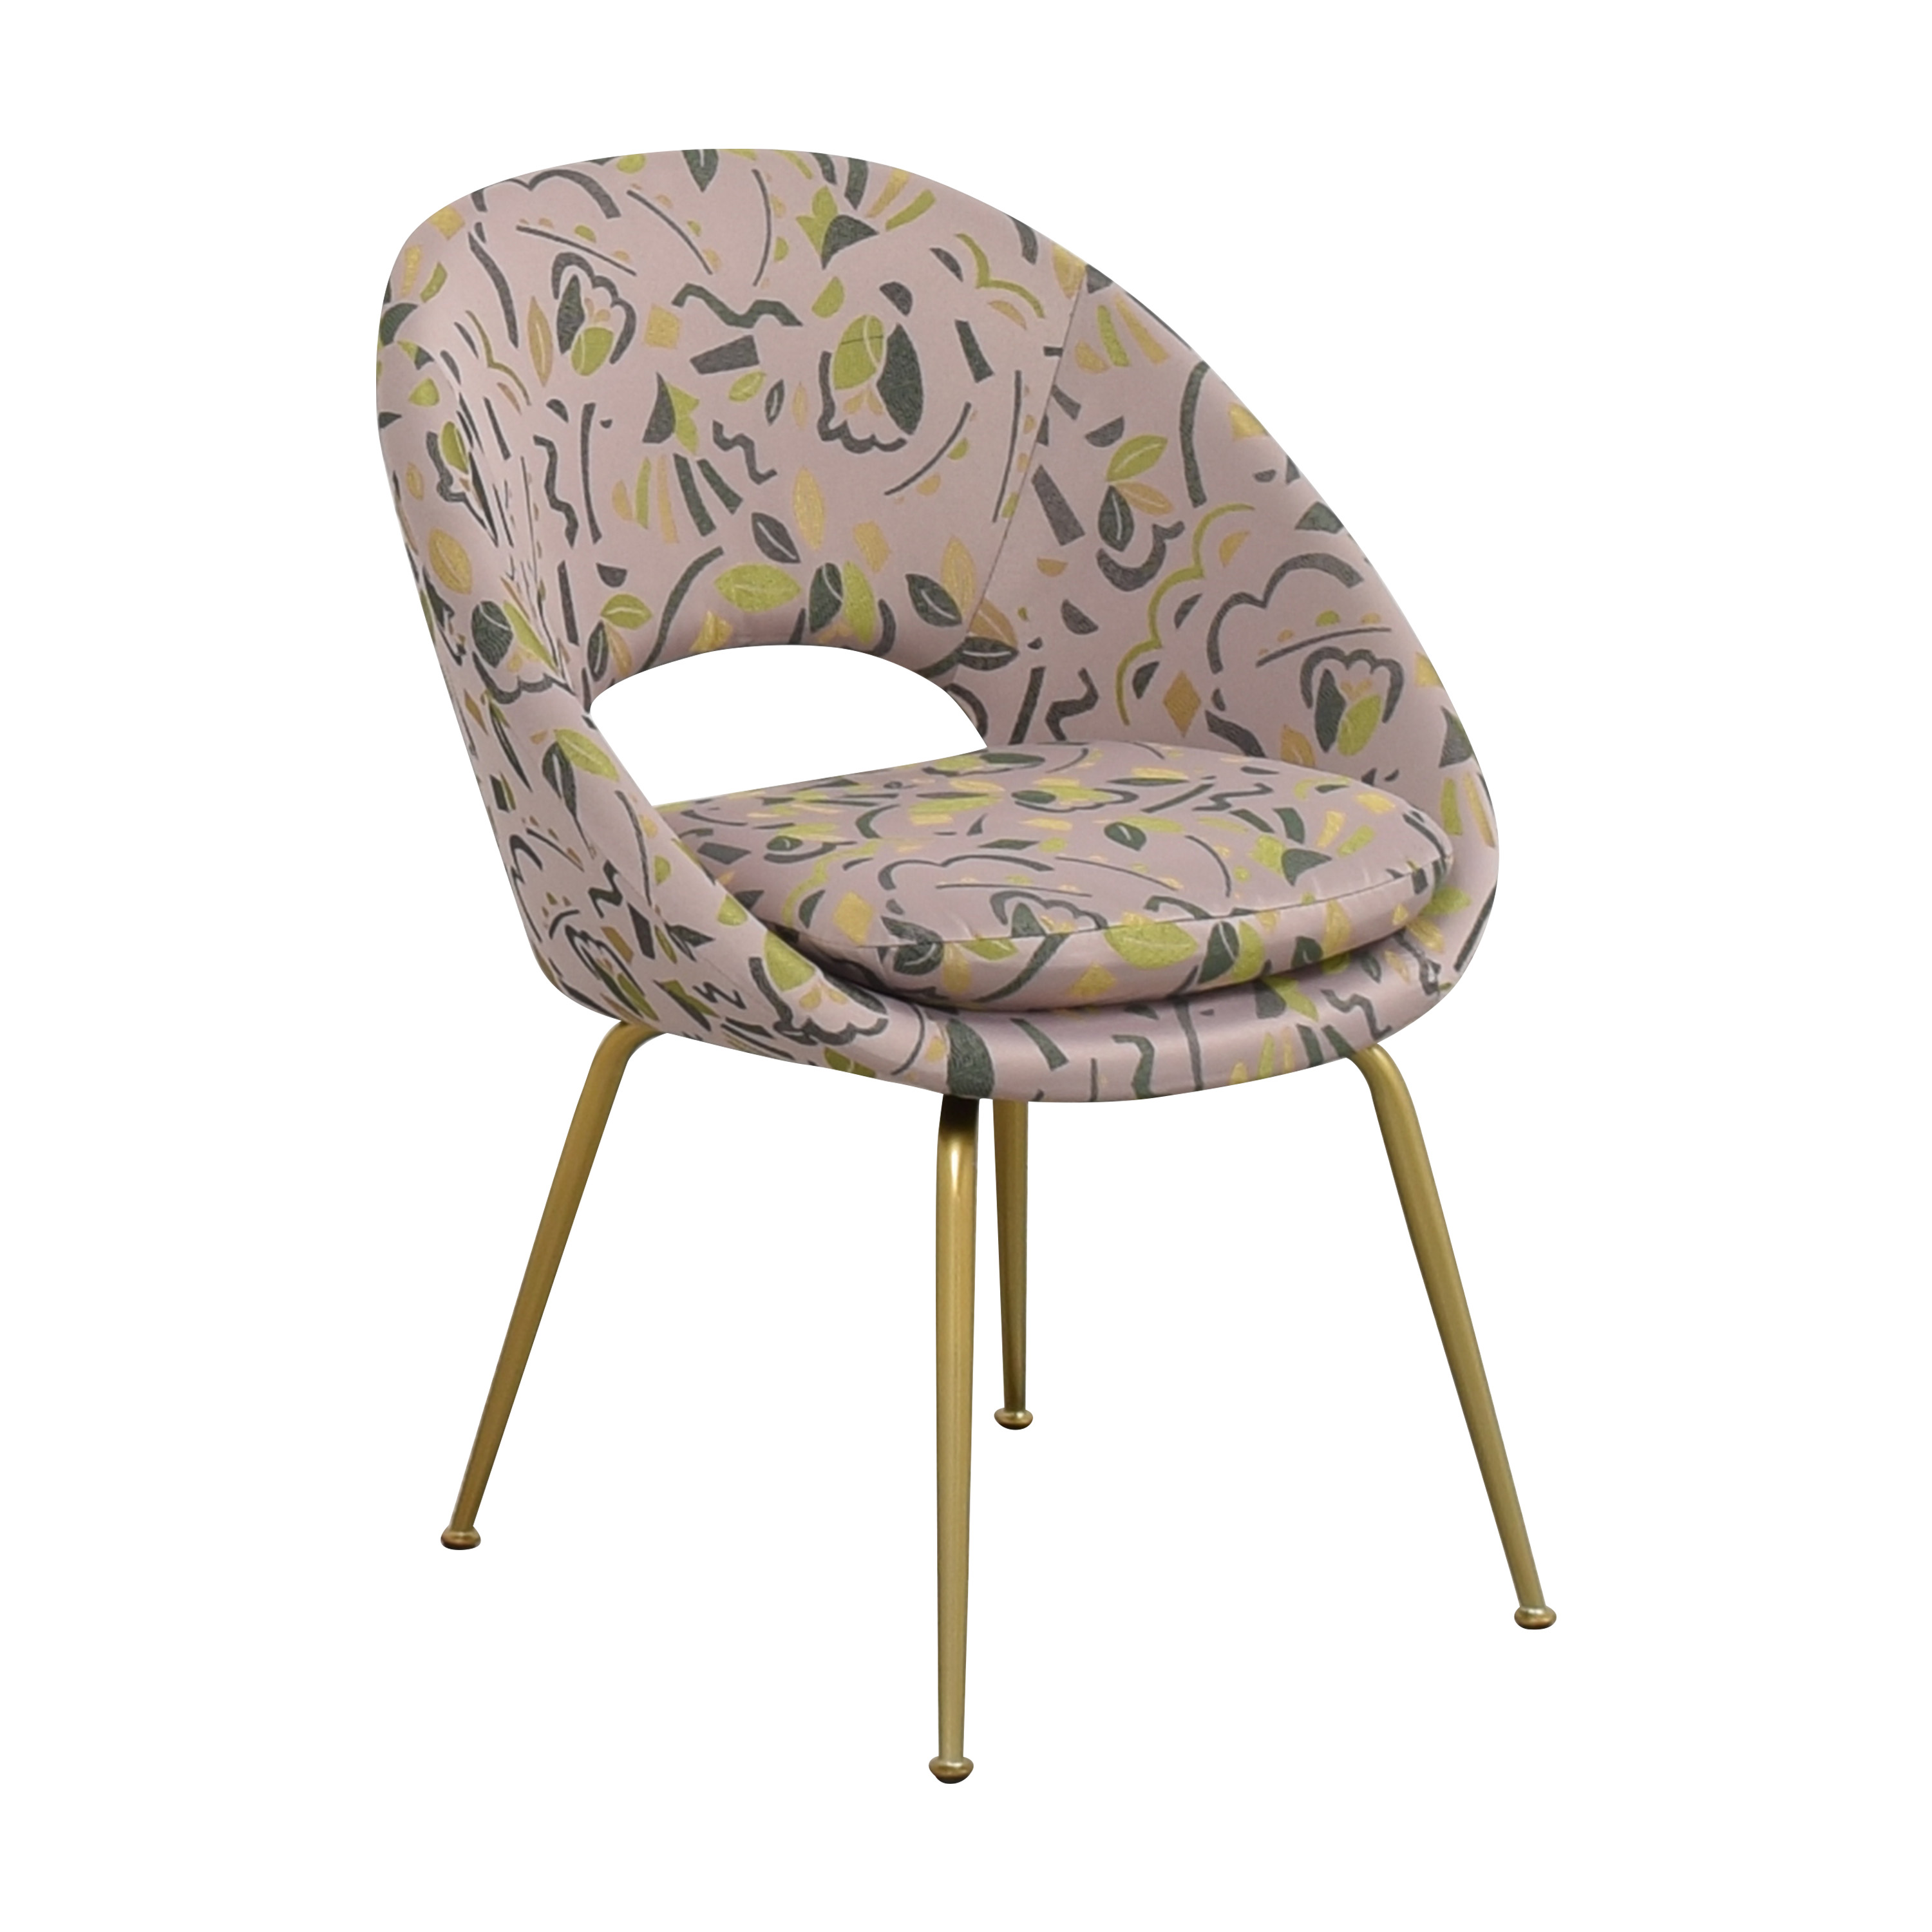 West Elm West Elm Orb Upholstered Chair price